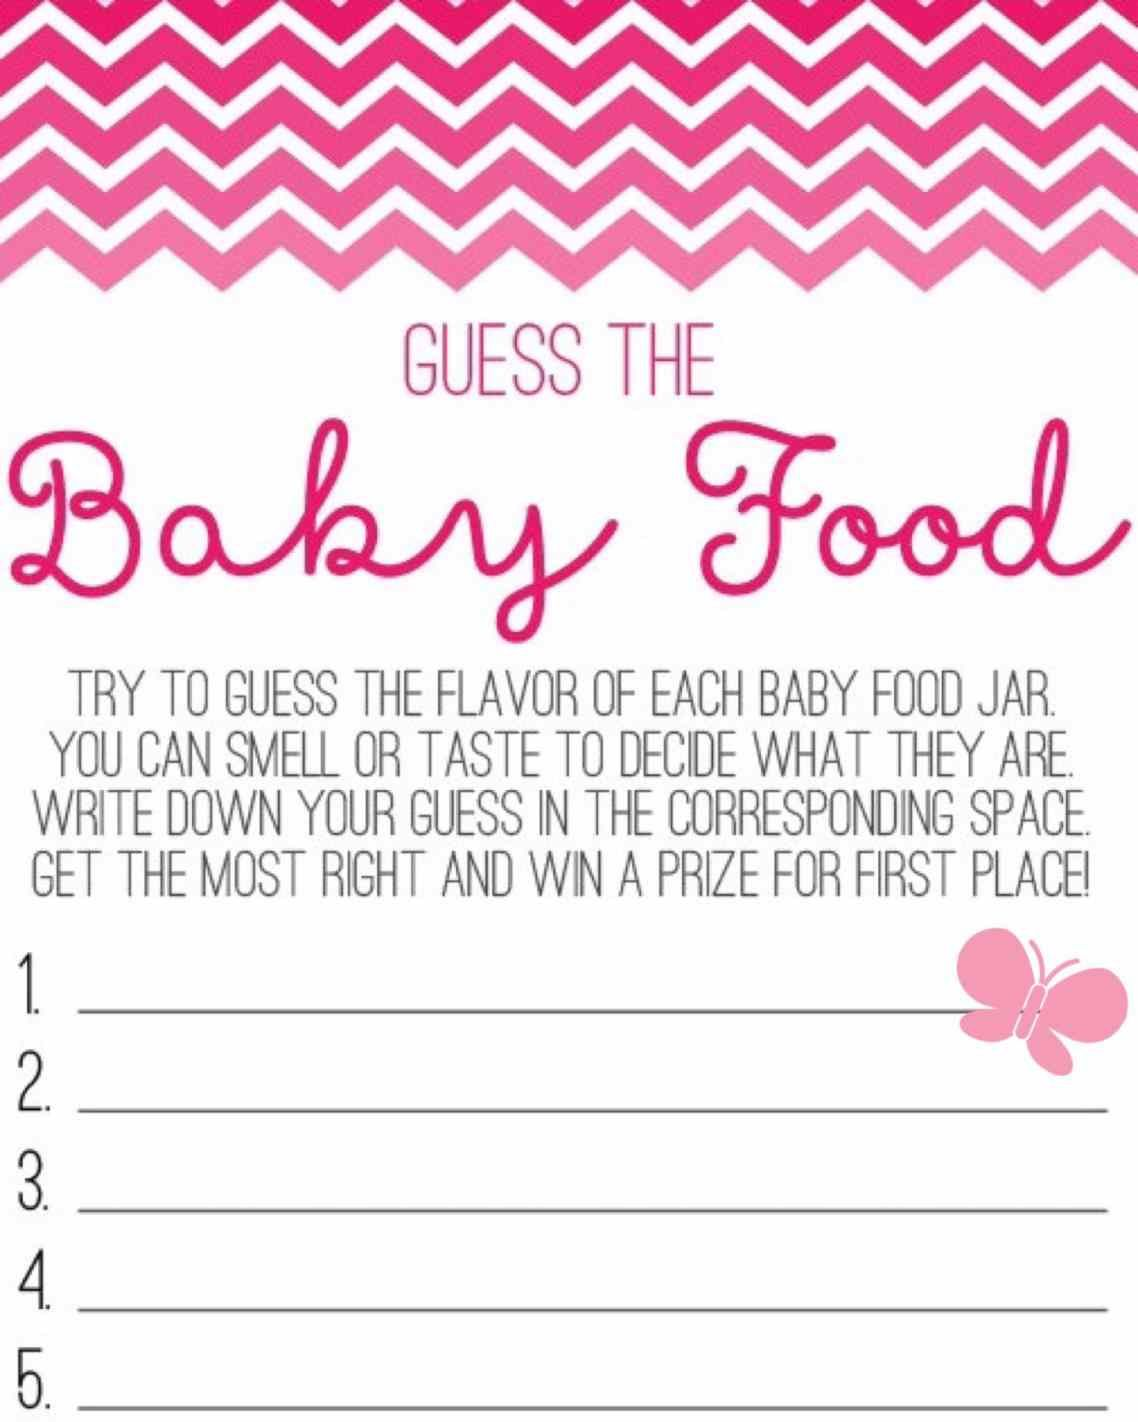 Printable Baby Shower Games And Activities Moms Candy Bar Word Search  Templates In Spanish Nursery Rhymes Free Uk Bingo Scramble